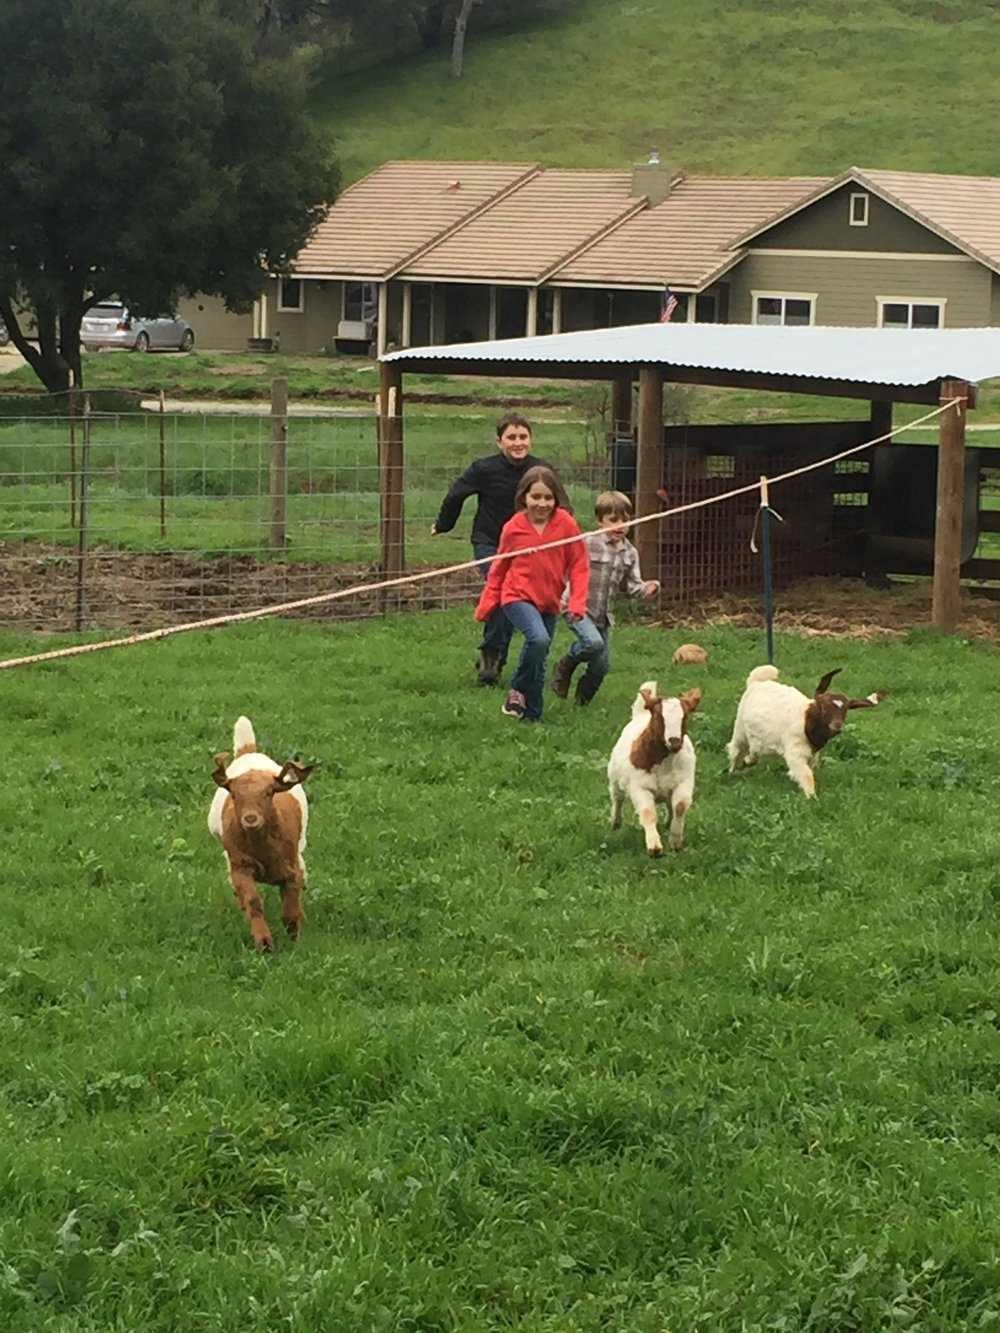 The Garrett kids enjoying the fresh air and green grass while they exercise their goats